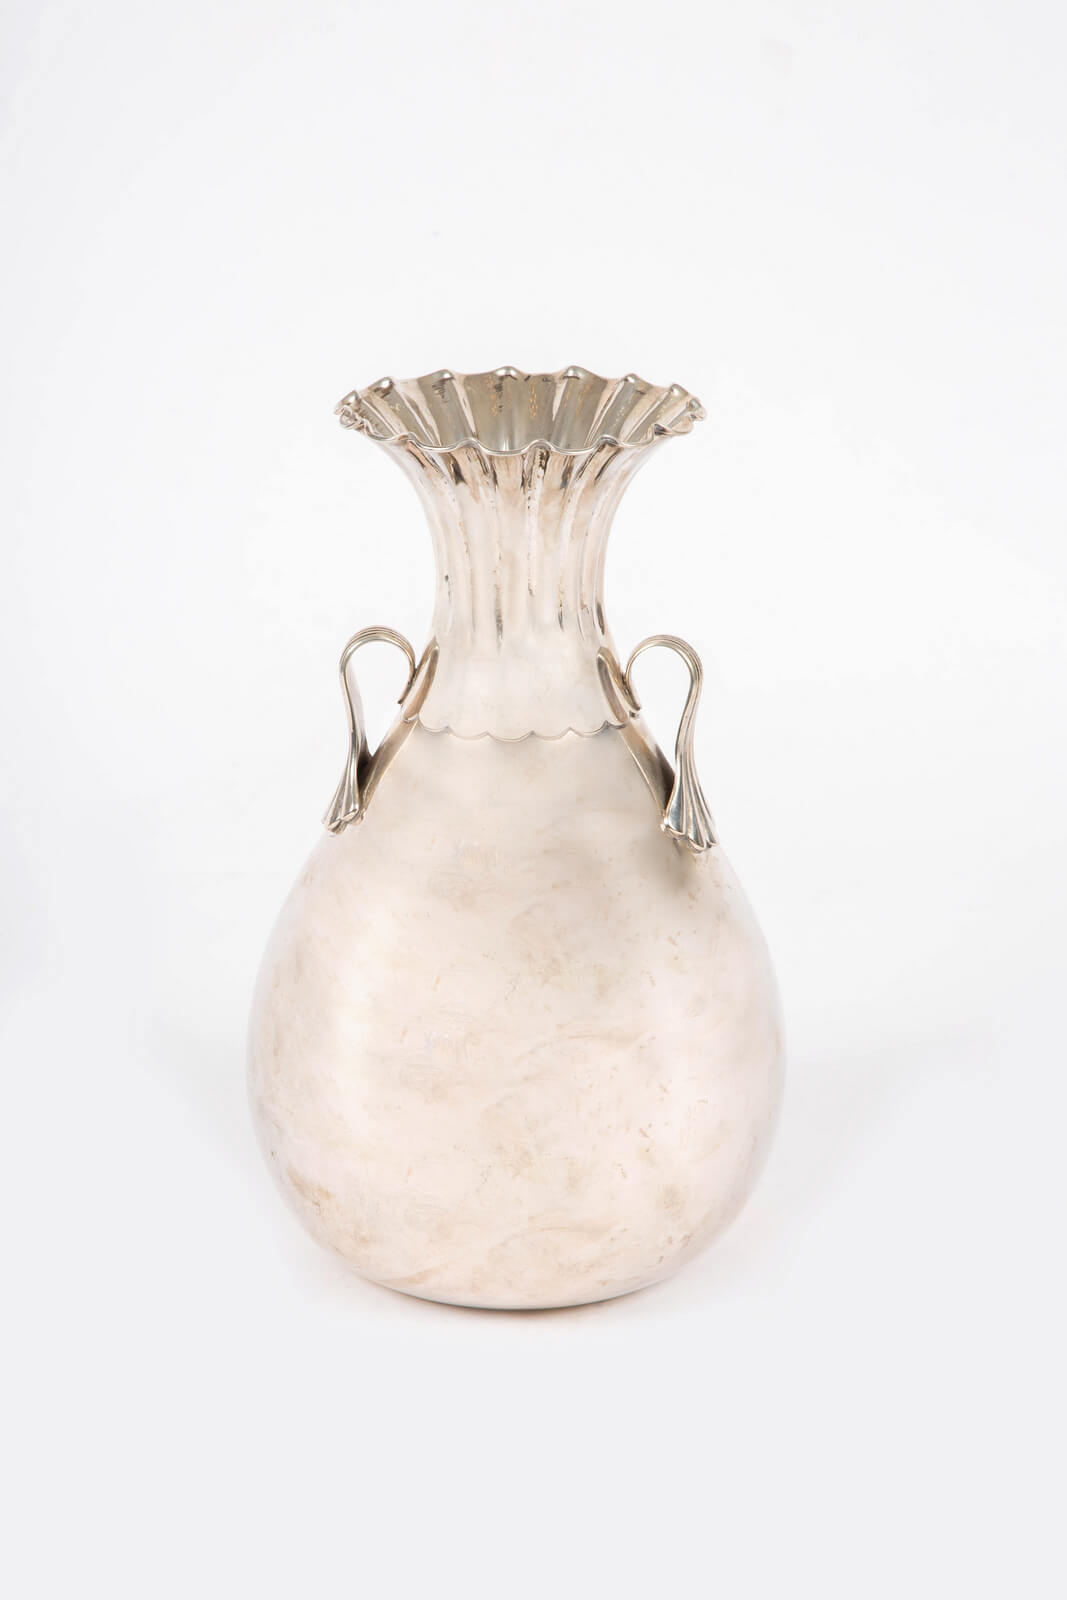 Vase by Romeo Miracoli for sale